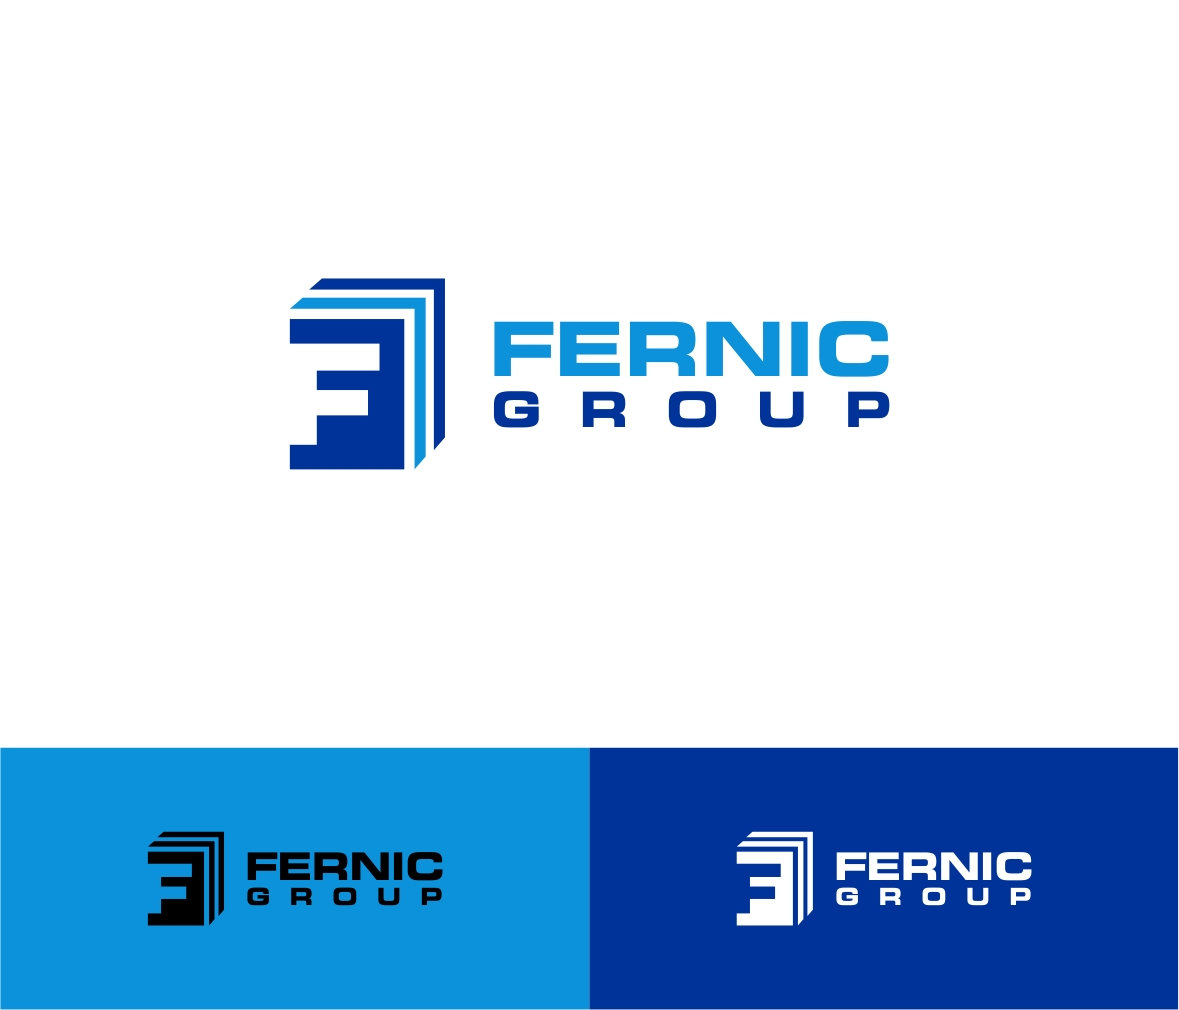 Logo Design by haidu - Entry No. 19 in the Logo Design Contest Artistic Logo Design for Fernic Goup.